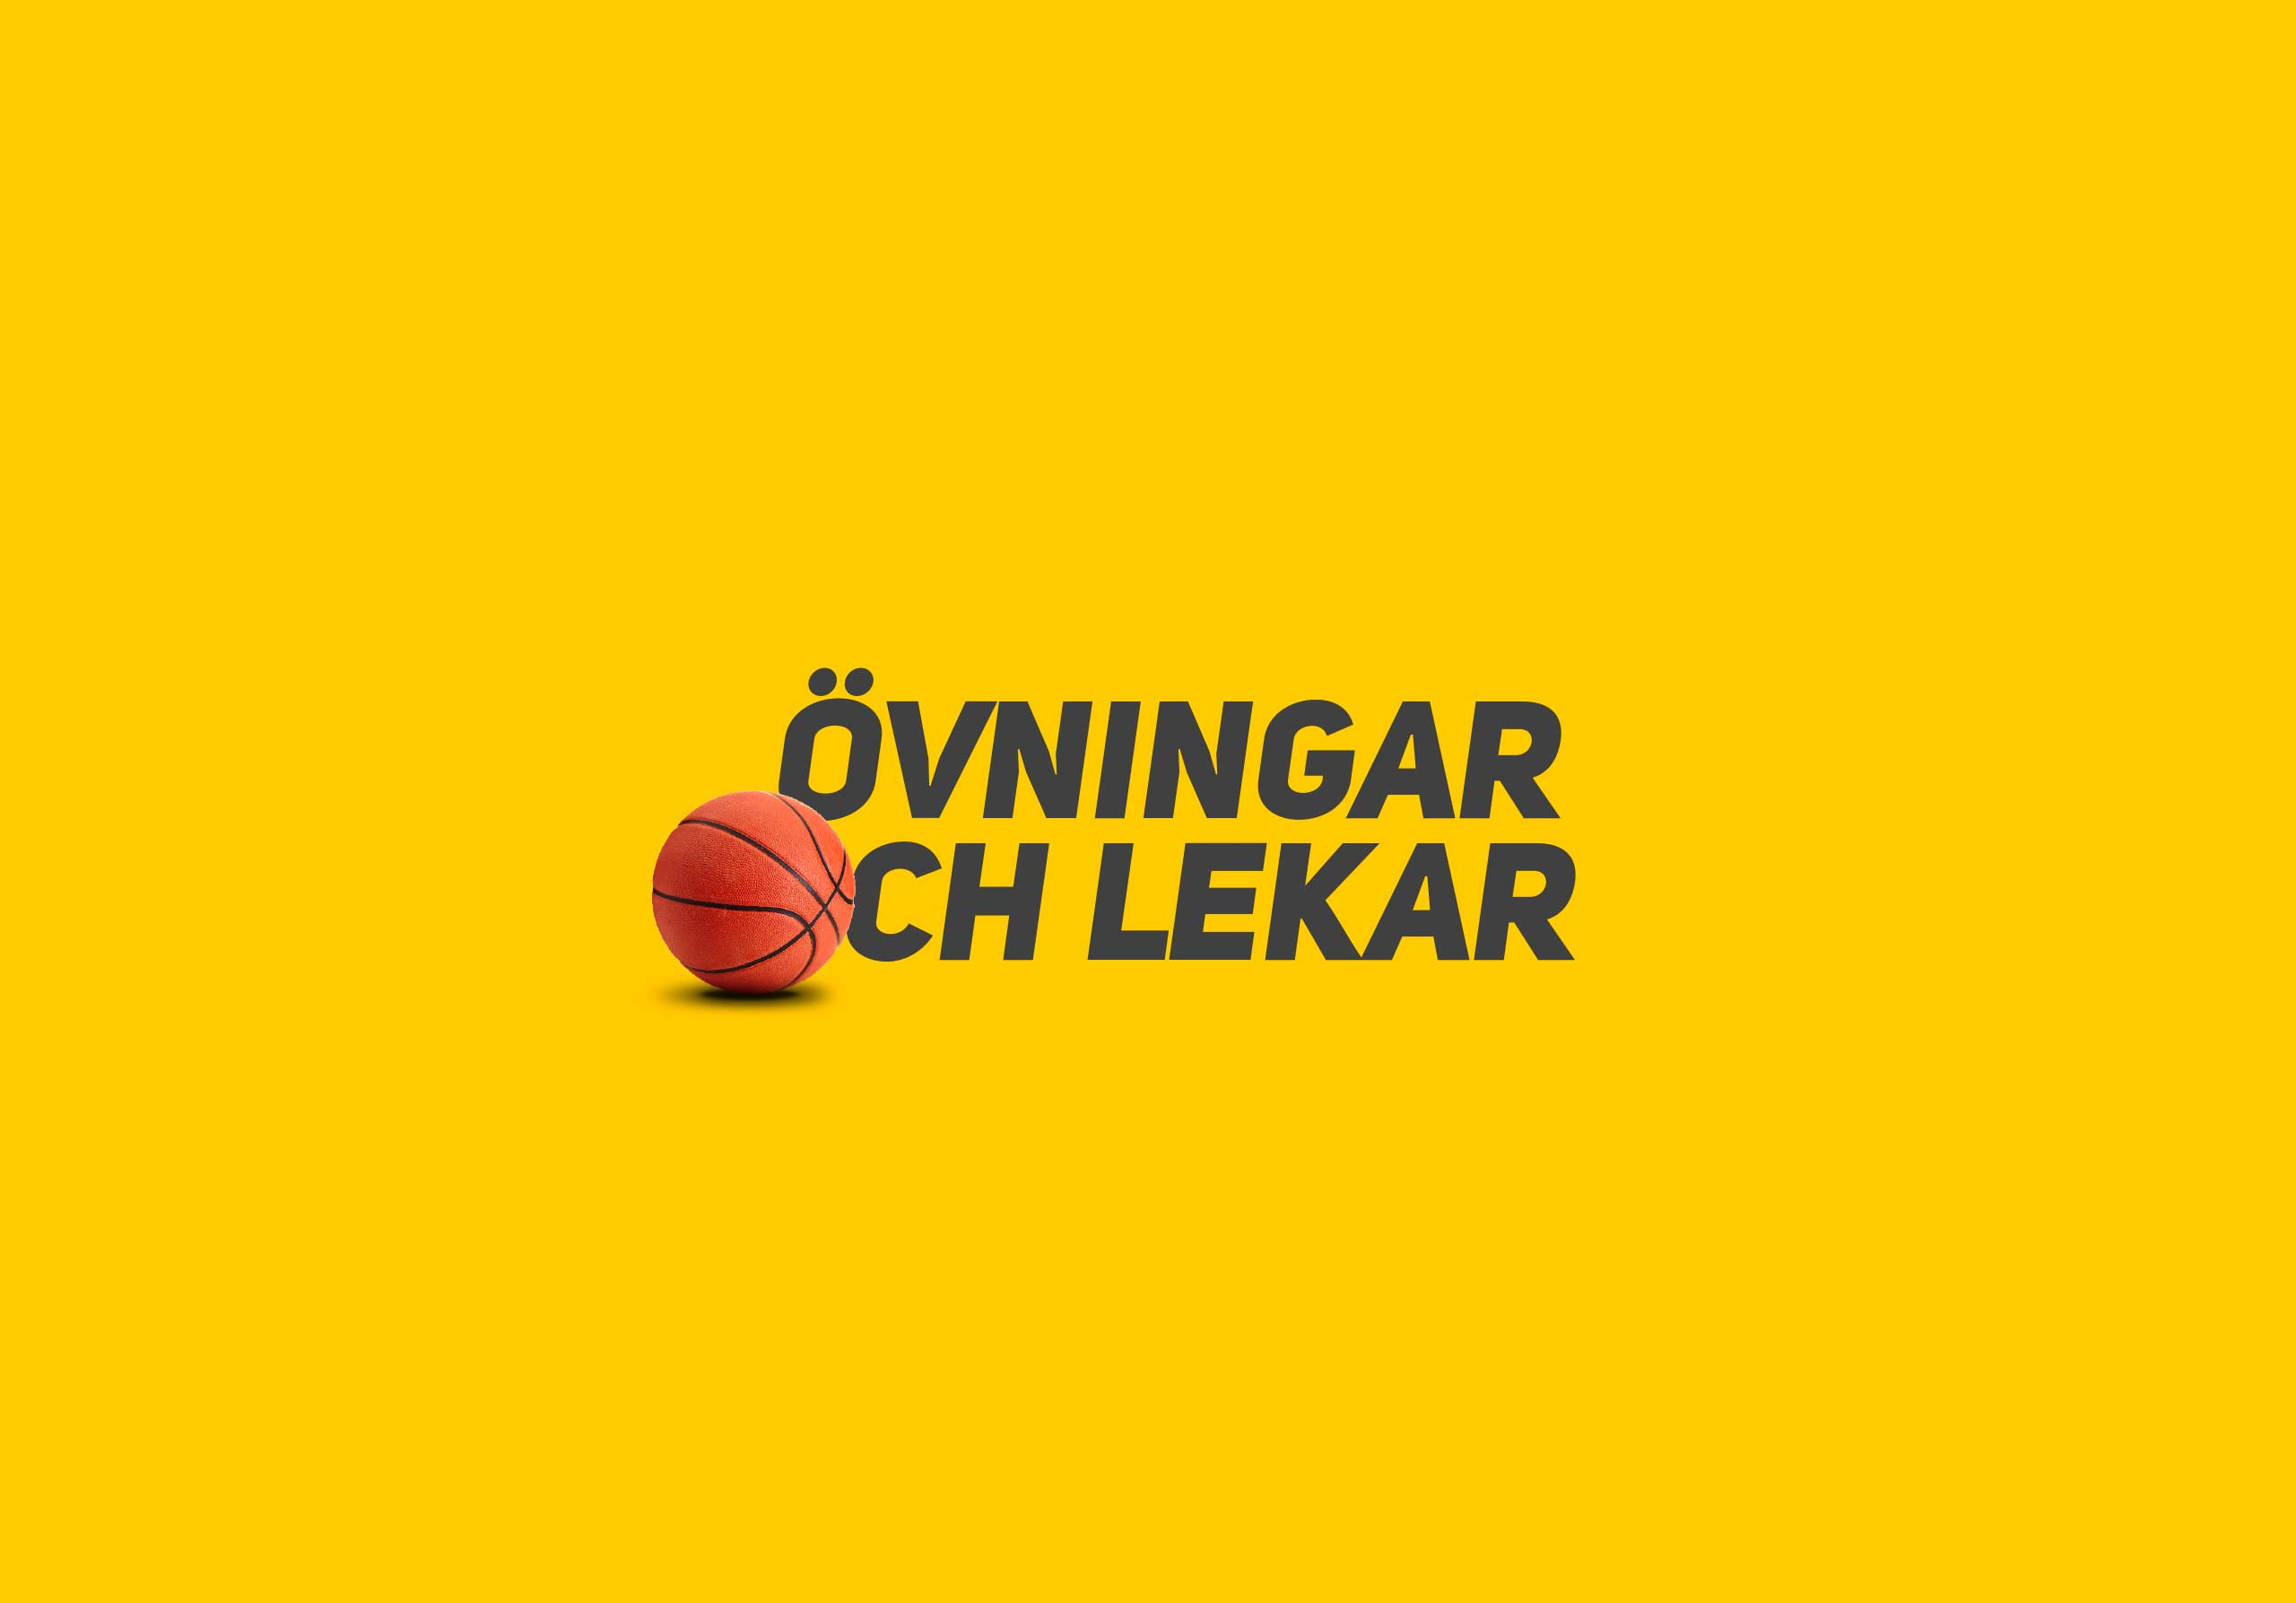 Playball Svenska Basketboll Förbundet